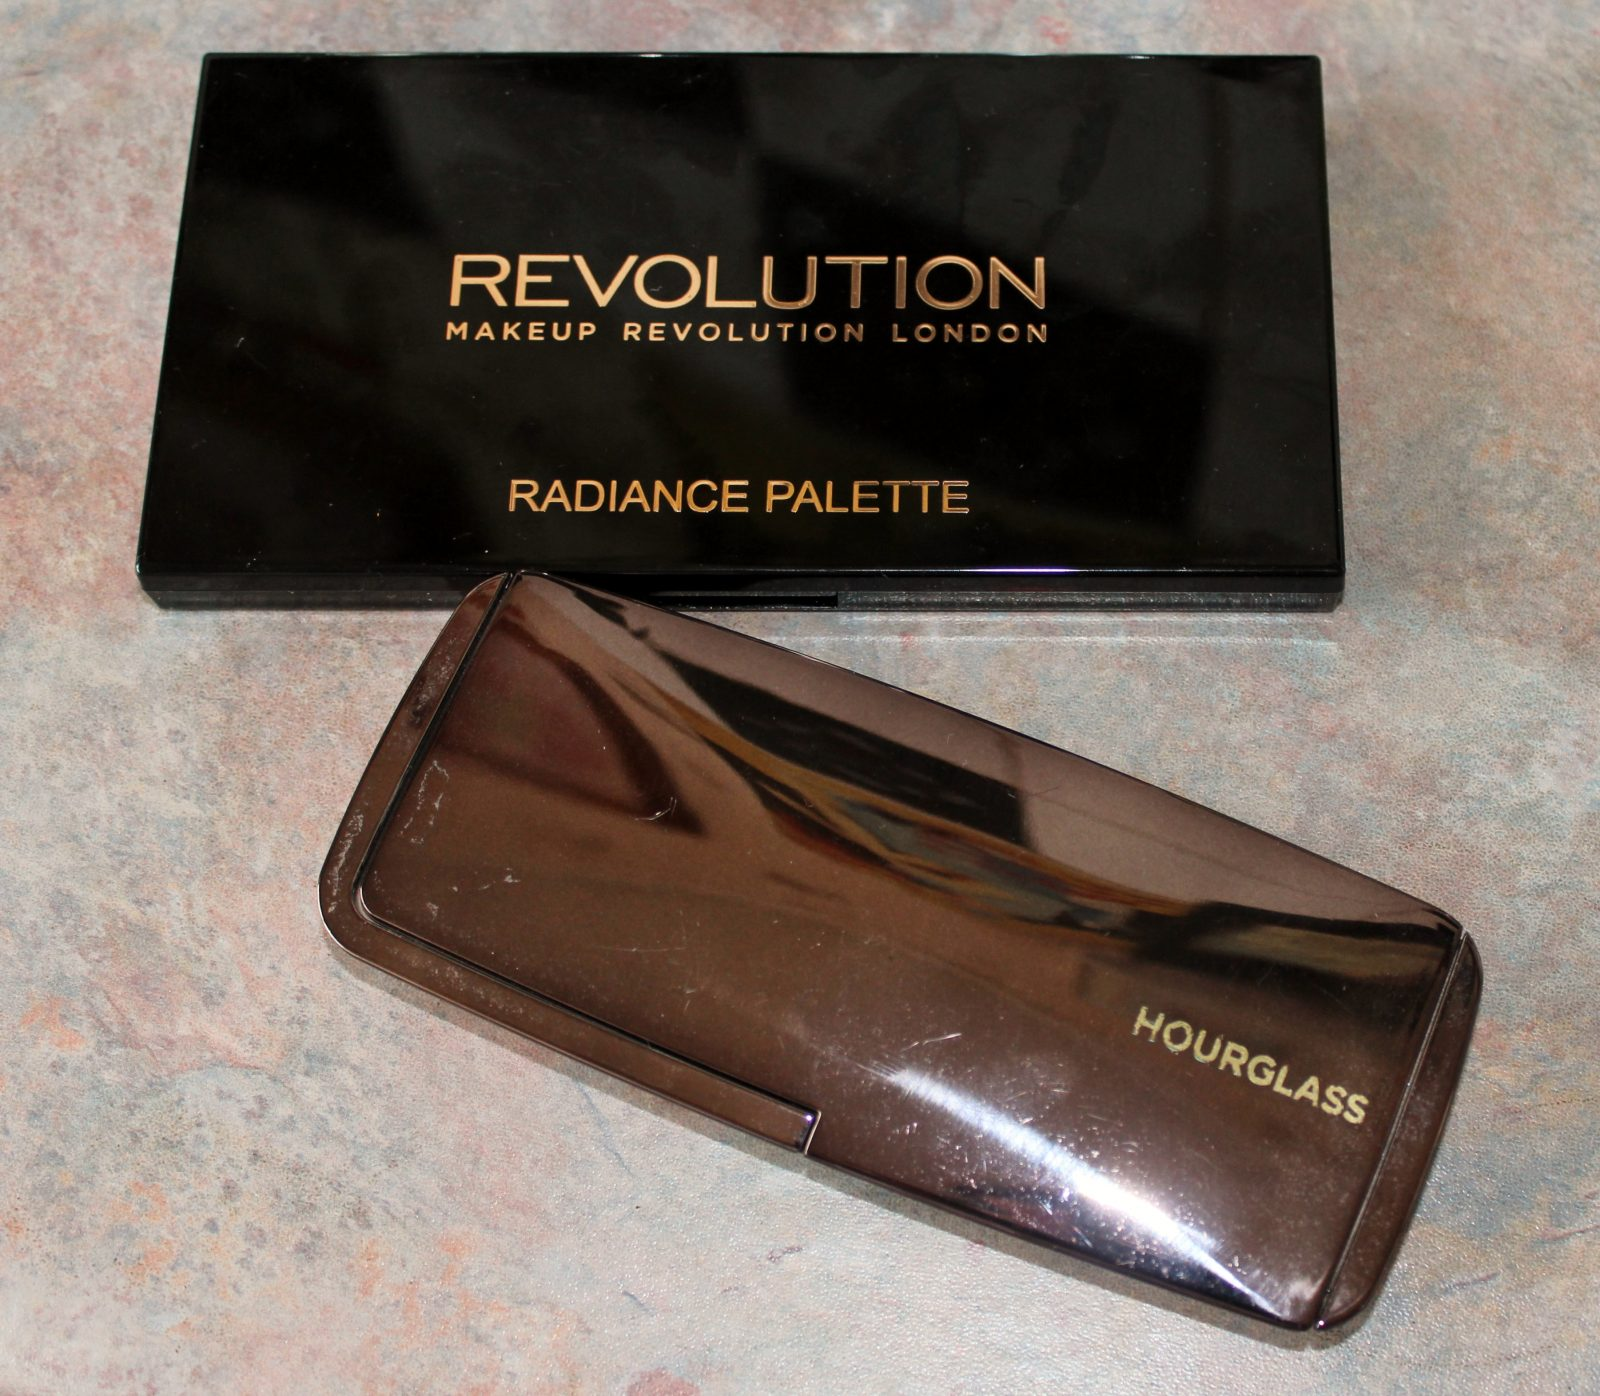 Makeup Revolution Radiance Palette V Hourglass Ambient Lighting Palette